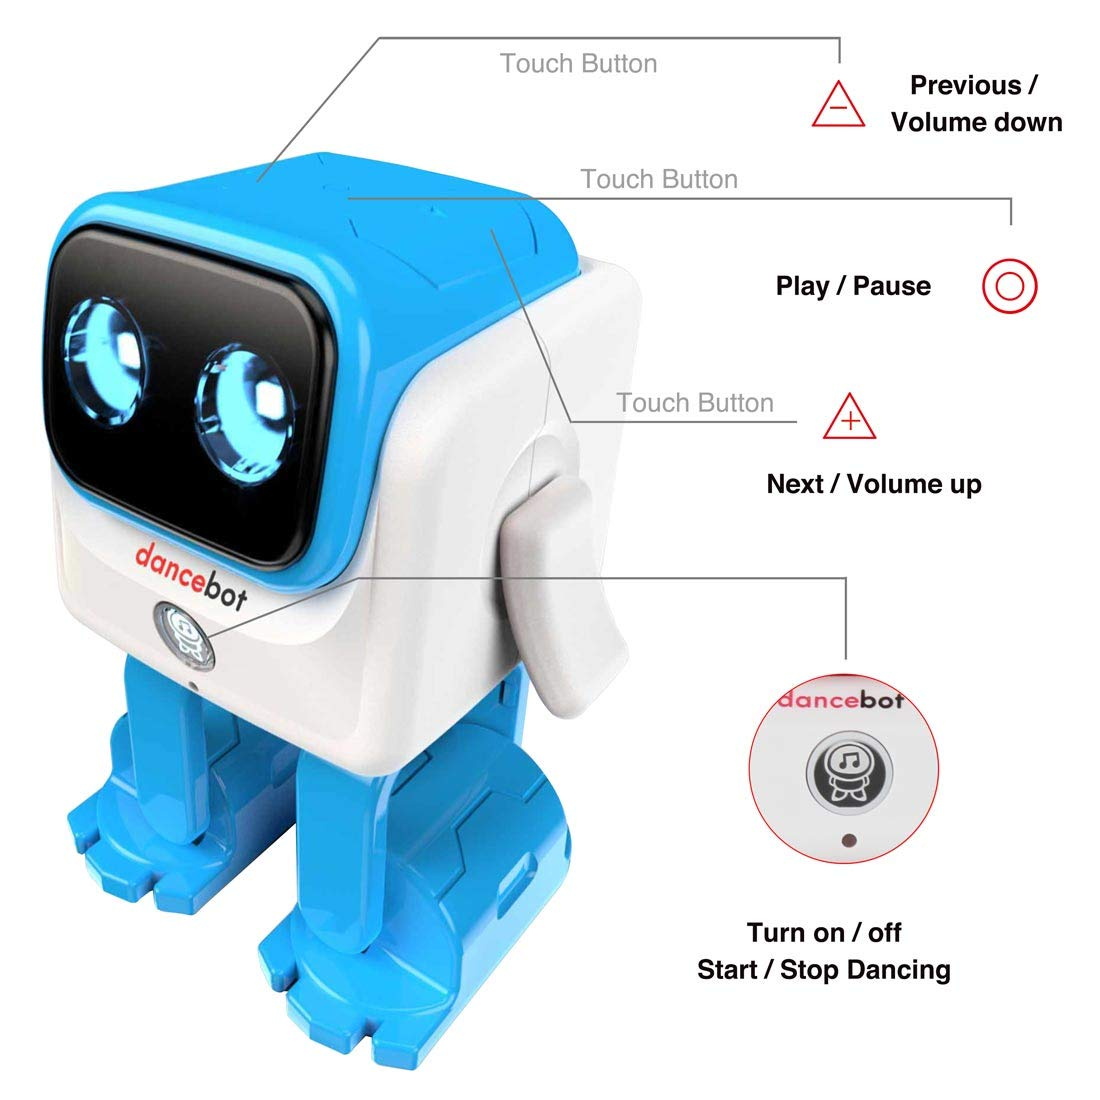 Echeers Kids Toys Dancing Robot for Boys and Girls, Educational Dancing Robot Toys for Kids with Stereo Bluetooth Speakers, Rechargeable Dance Robot Follow Music Beats Rhythm, All Age Children - Blue by ECHEERS (Image #5)